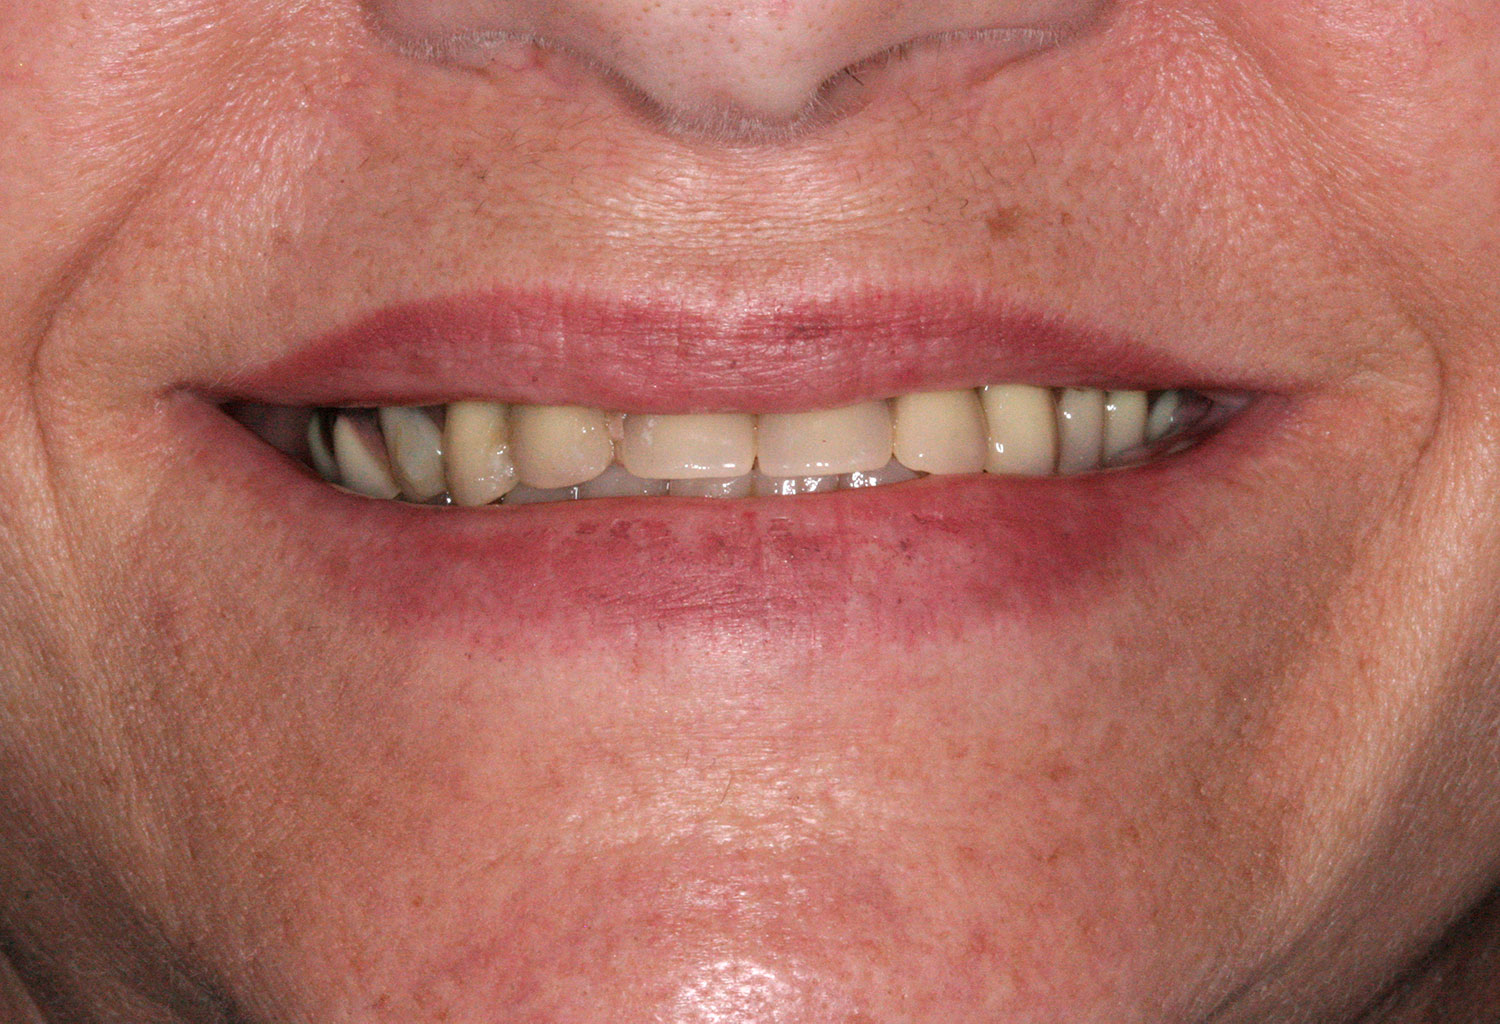 Before re-restoration of implants and teeth